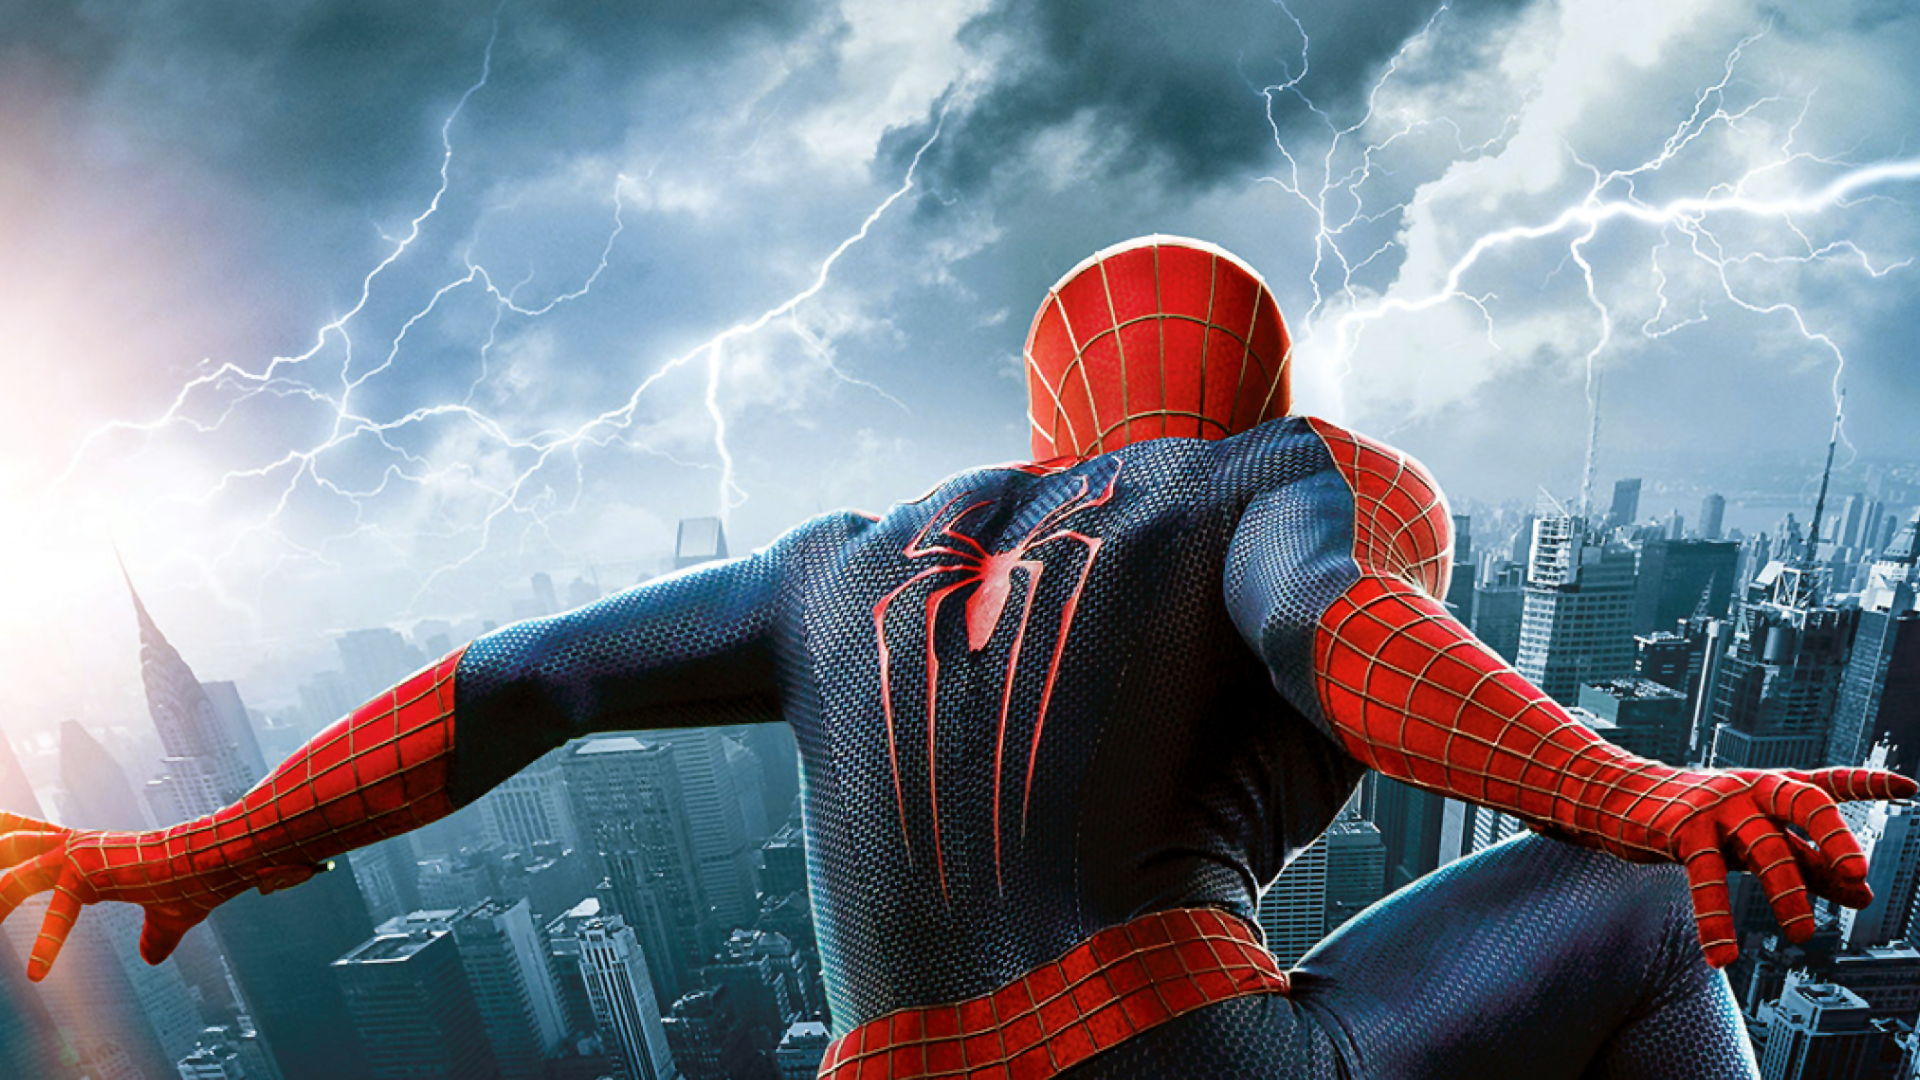 live-stream of The Amazing Spider-Man 2 premiere